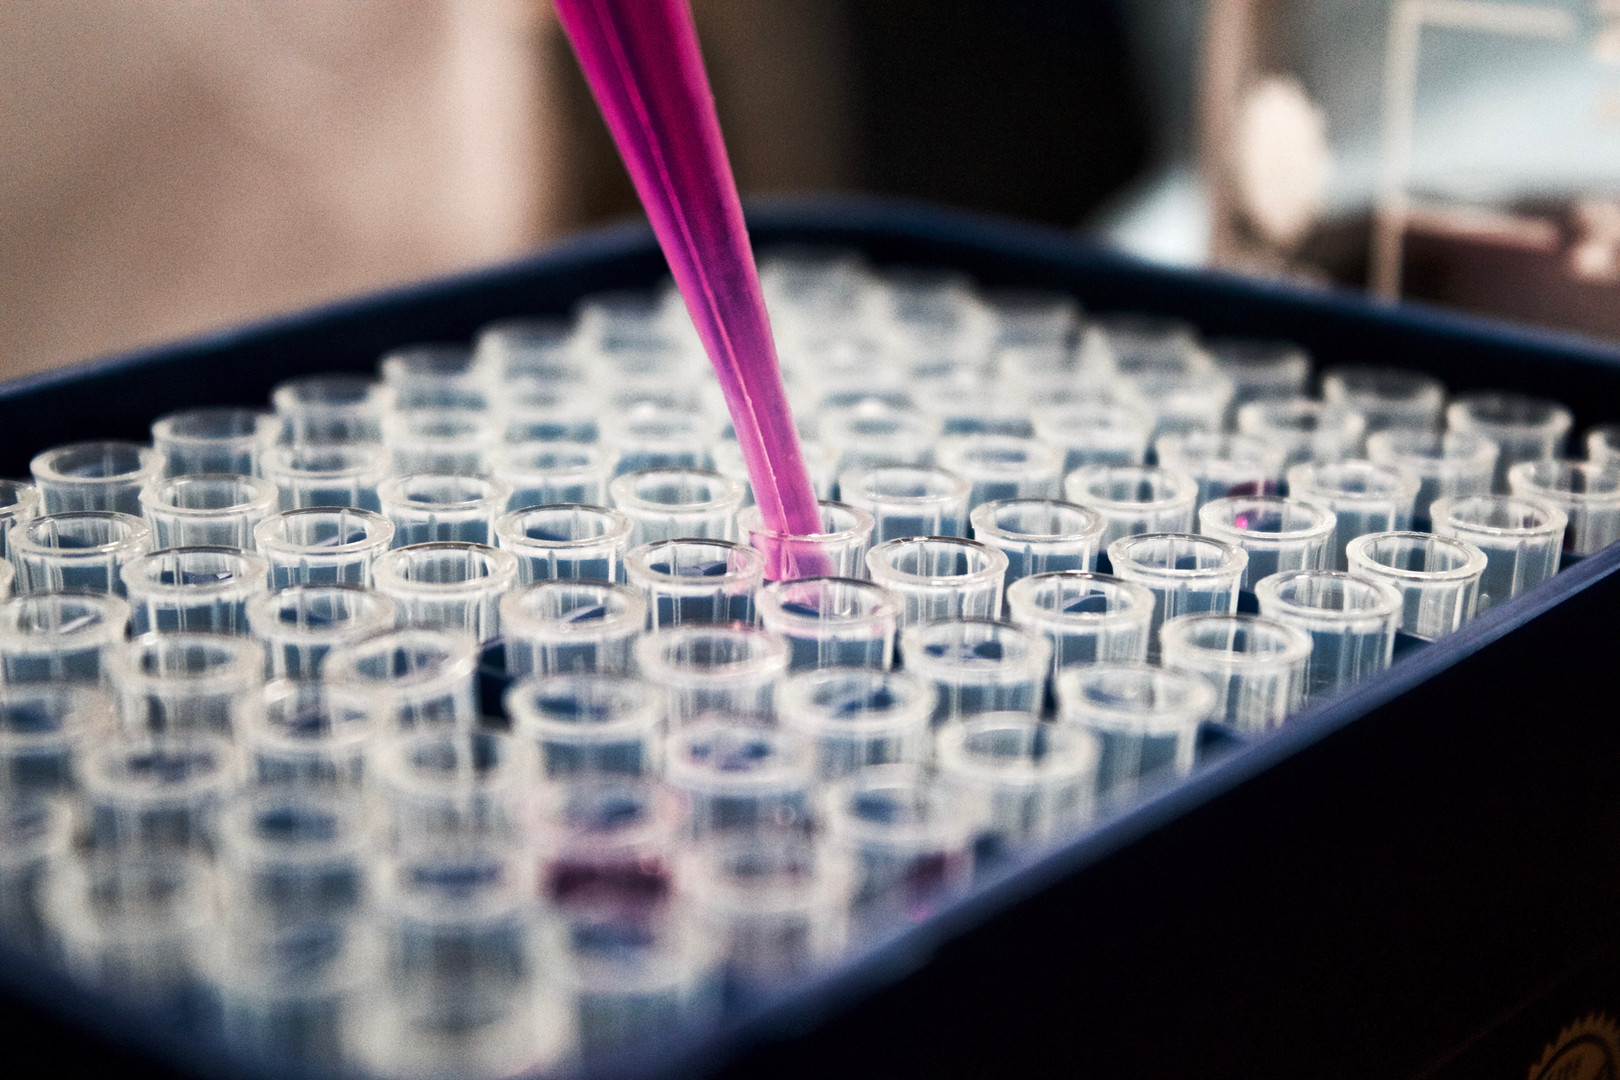 Pipetting. Credit: Louis Reed